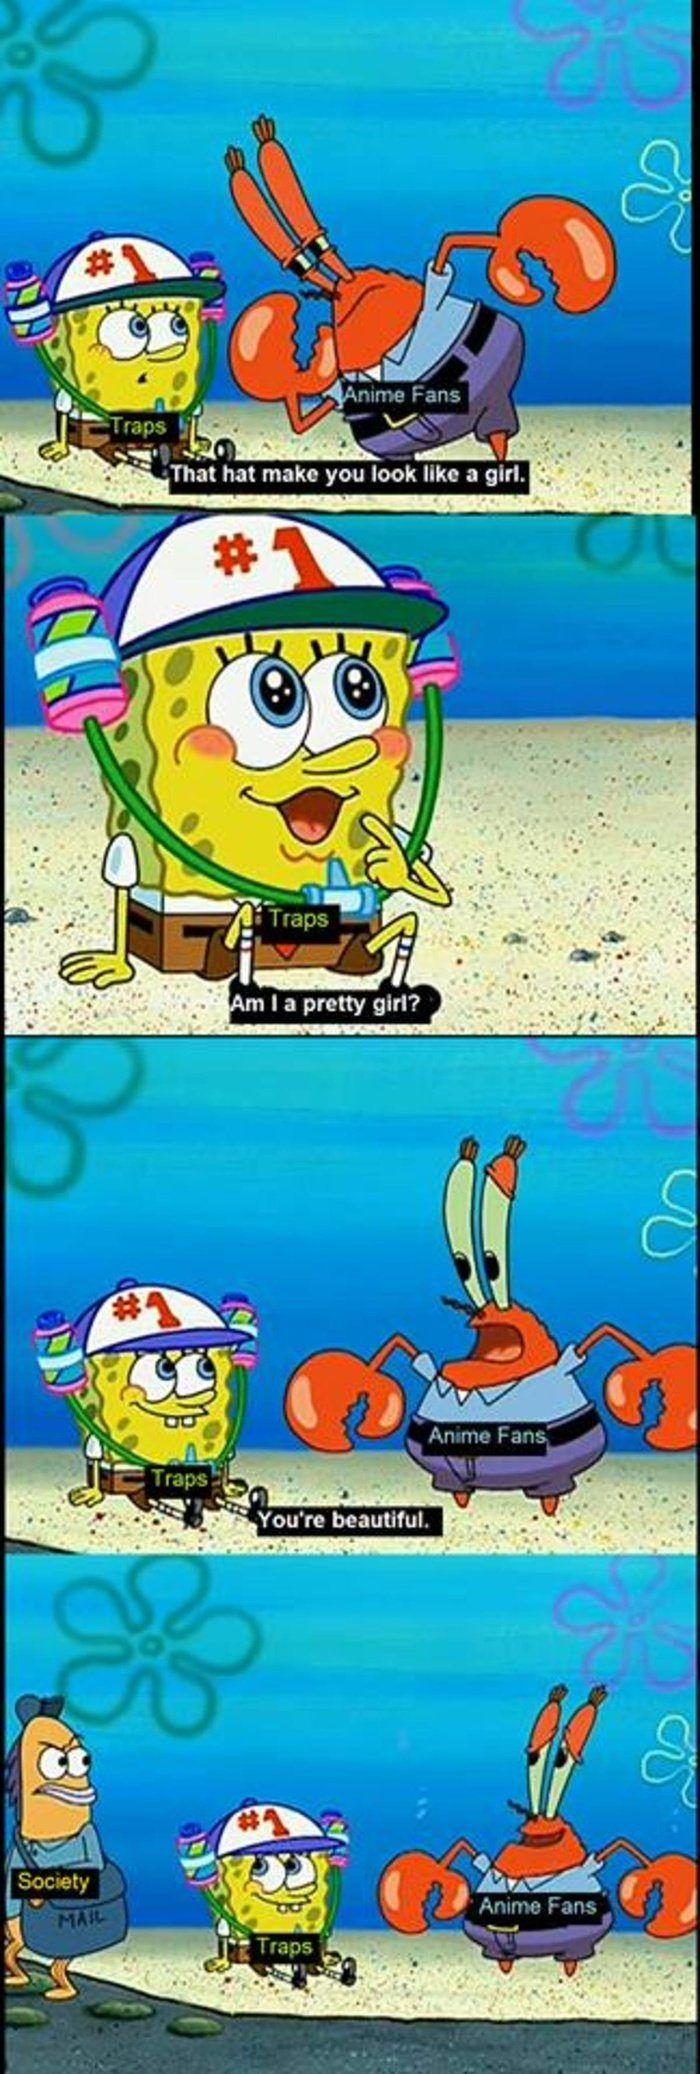 Pondering upvotes and downvotes meme collection funny funny memes spongebob memes